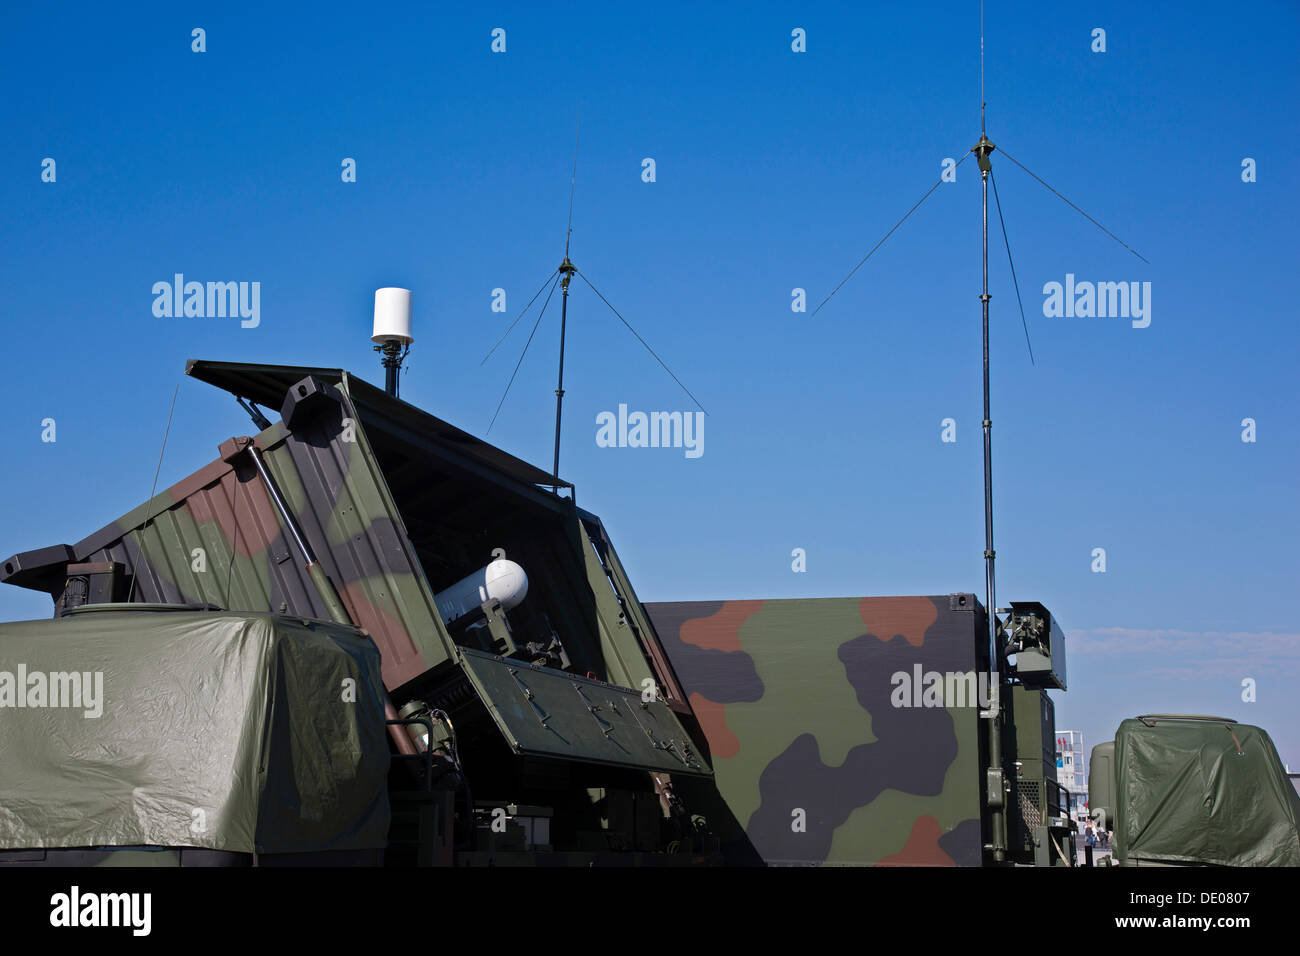 unmanned drone army stockfotos unmanned drone army bilder alamy. Black Bedroom Furniture Sets. Home Design Ideas